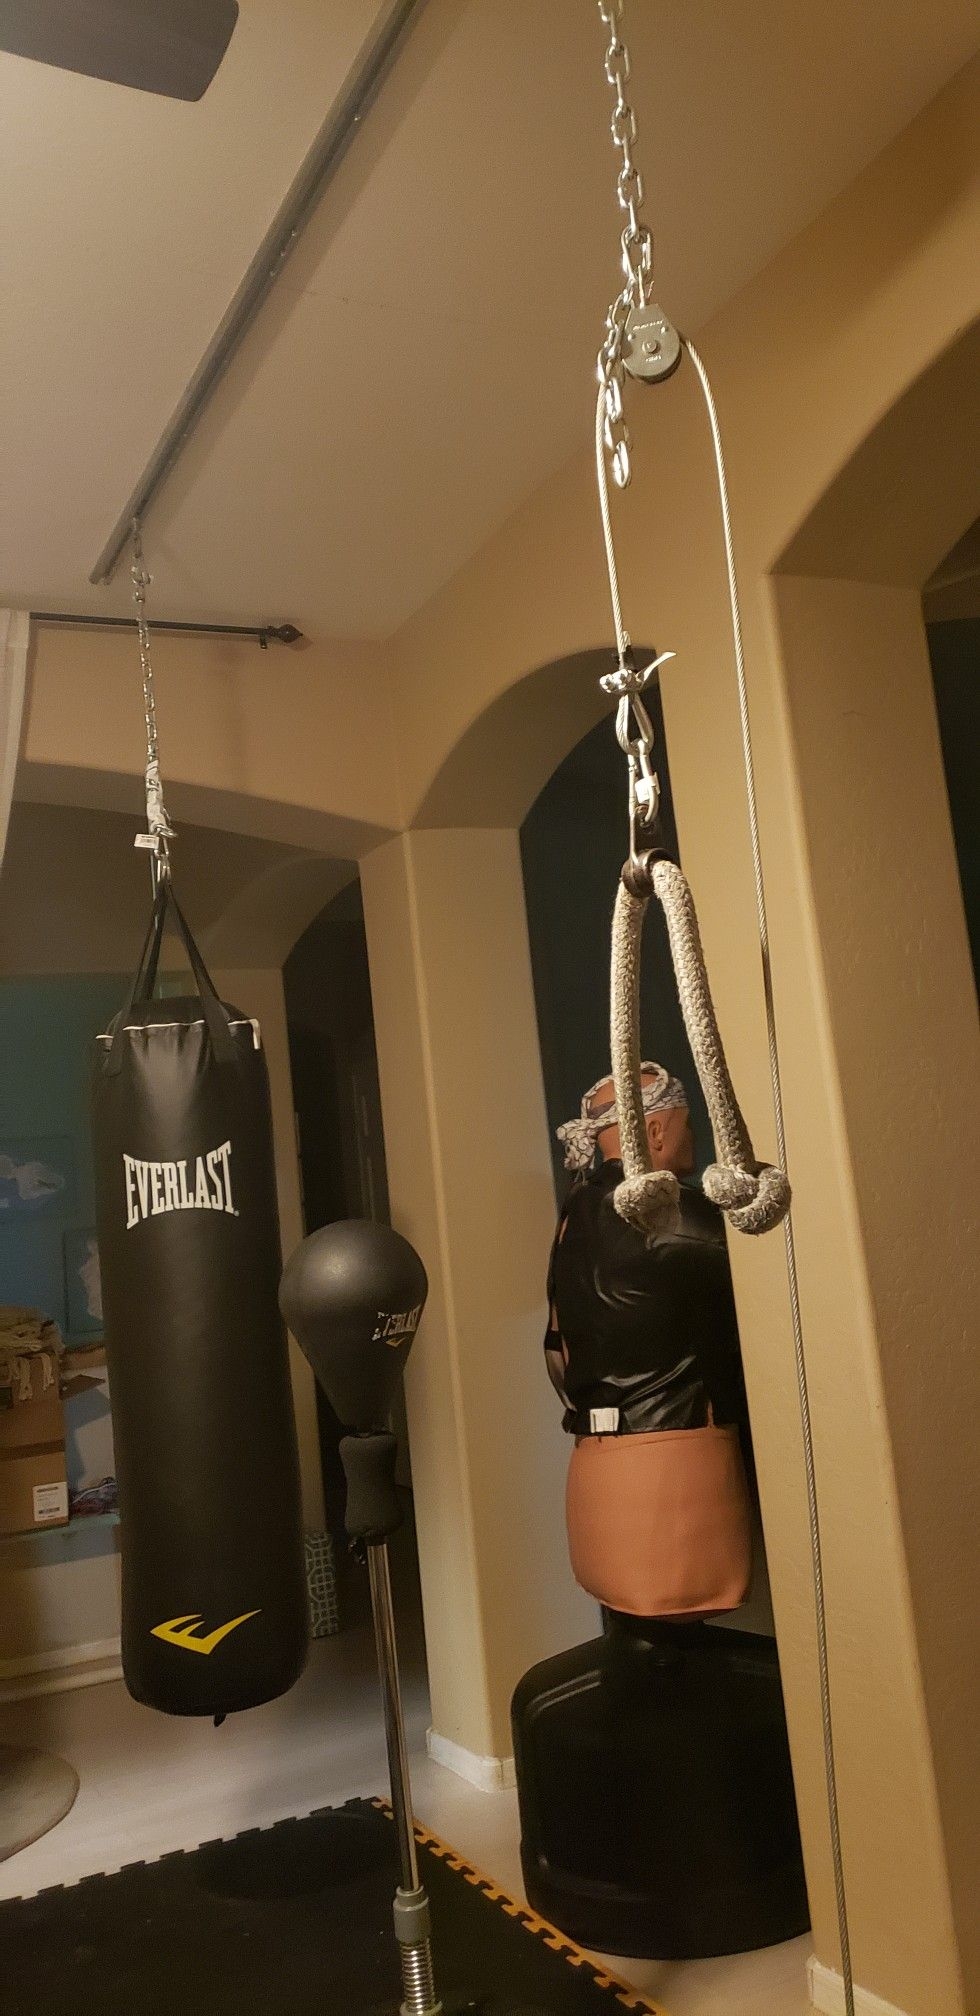 Here is my tuffrail heavy bag mount installed with heavy